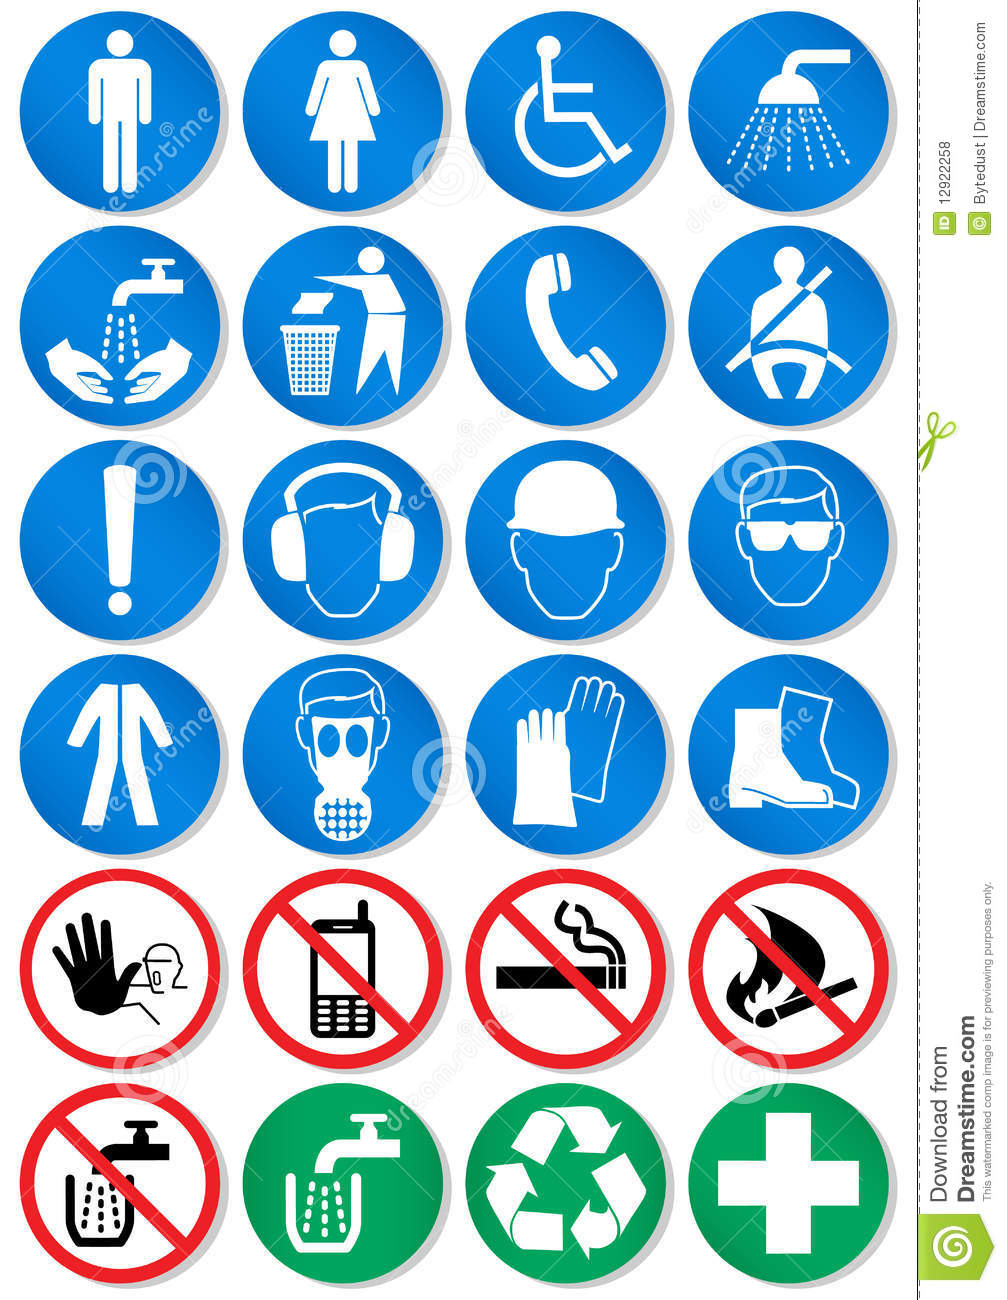 Vector Set Of Different Communication Signs Royalty Free. Bon Appetit Signs. Meet Signs. Stroke Patient Signs. Niosh Signs Of Stroke. Traffic Chennai Signs. Traffic Bahrain Signs. Bottle Water Signs. Picket Signs Of Stroke